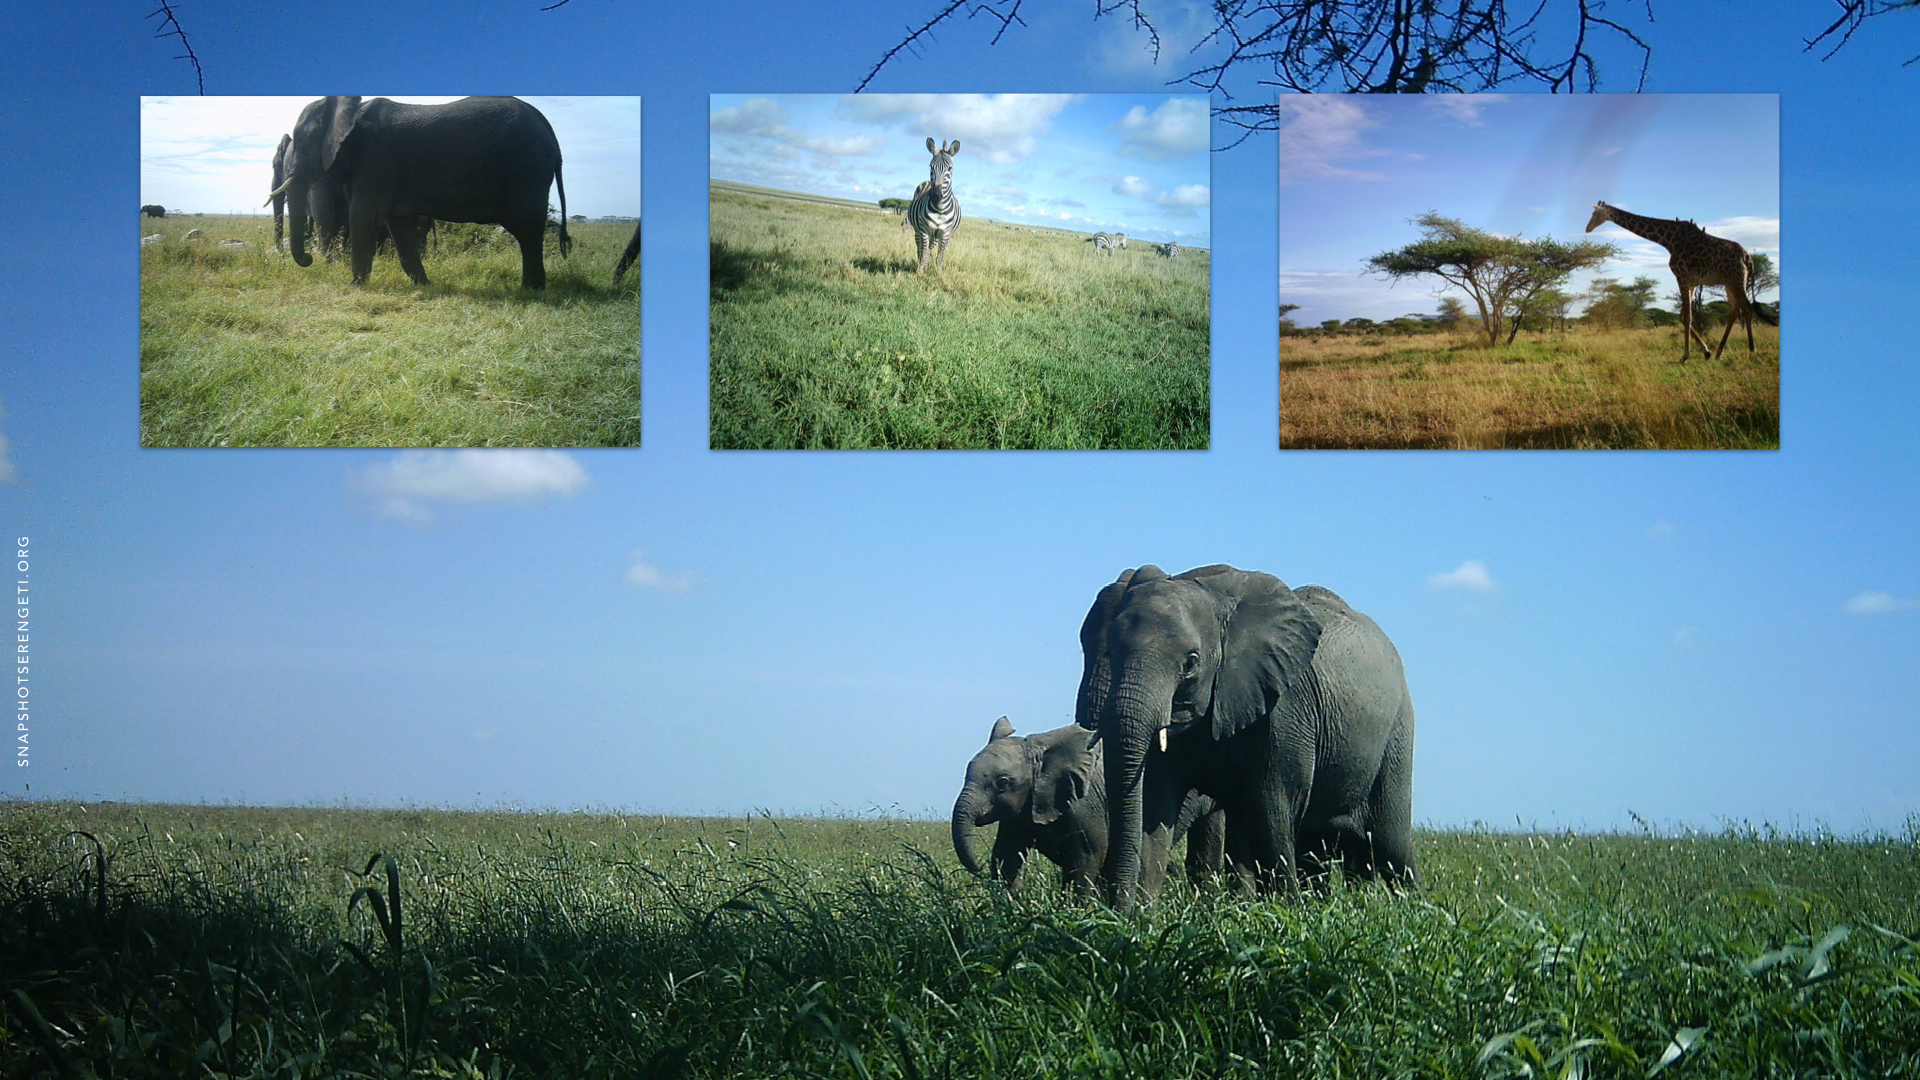 Examples of images from the Snapshot Serengeti project. Image: Zooniverse